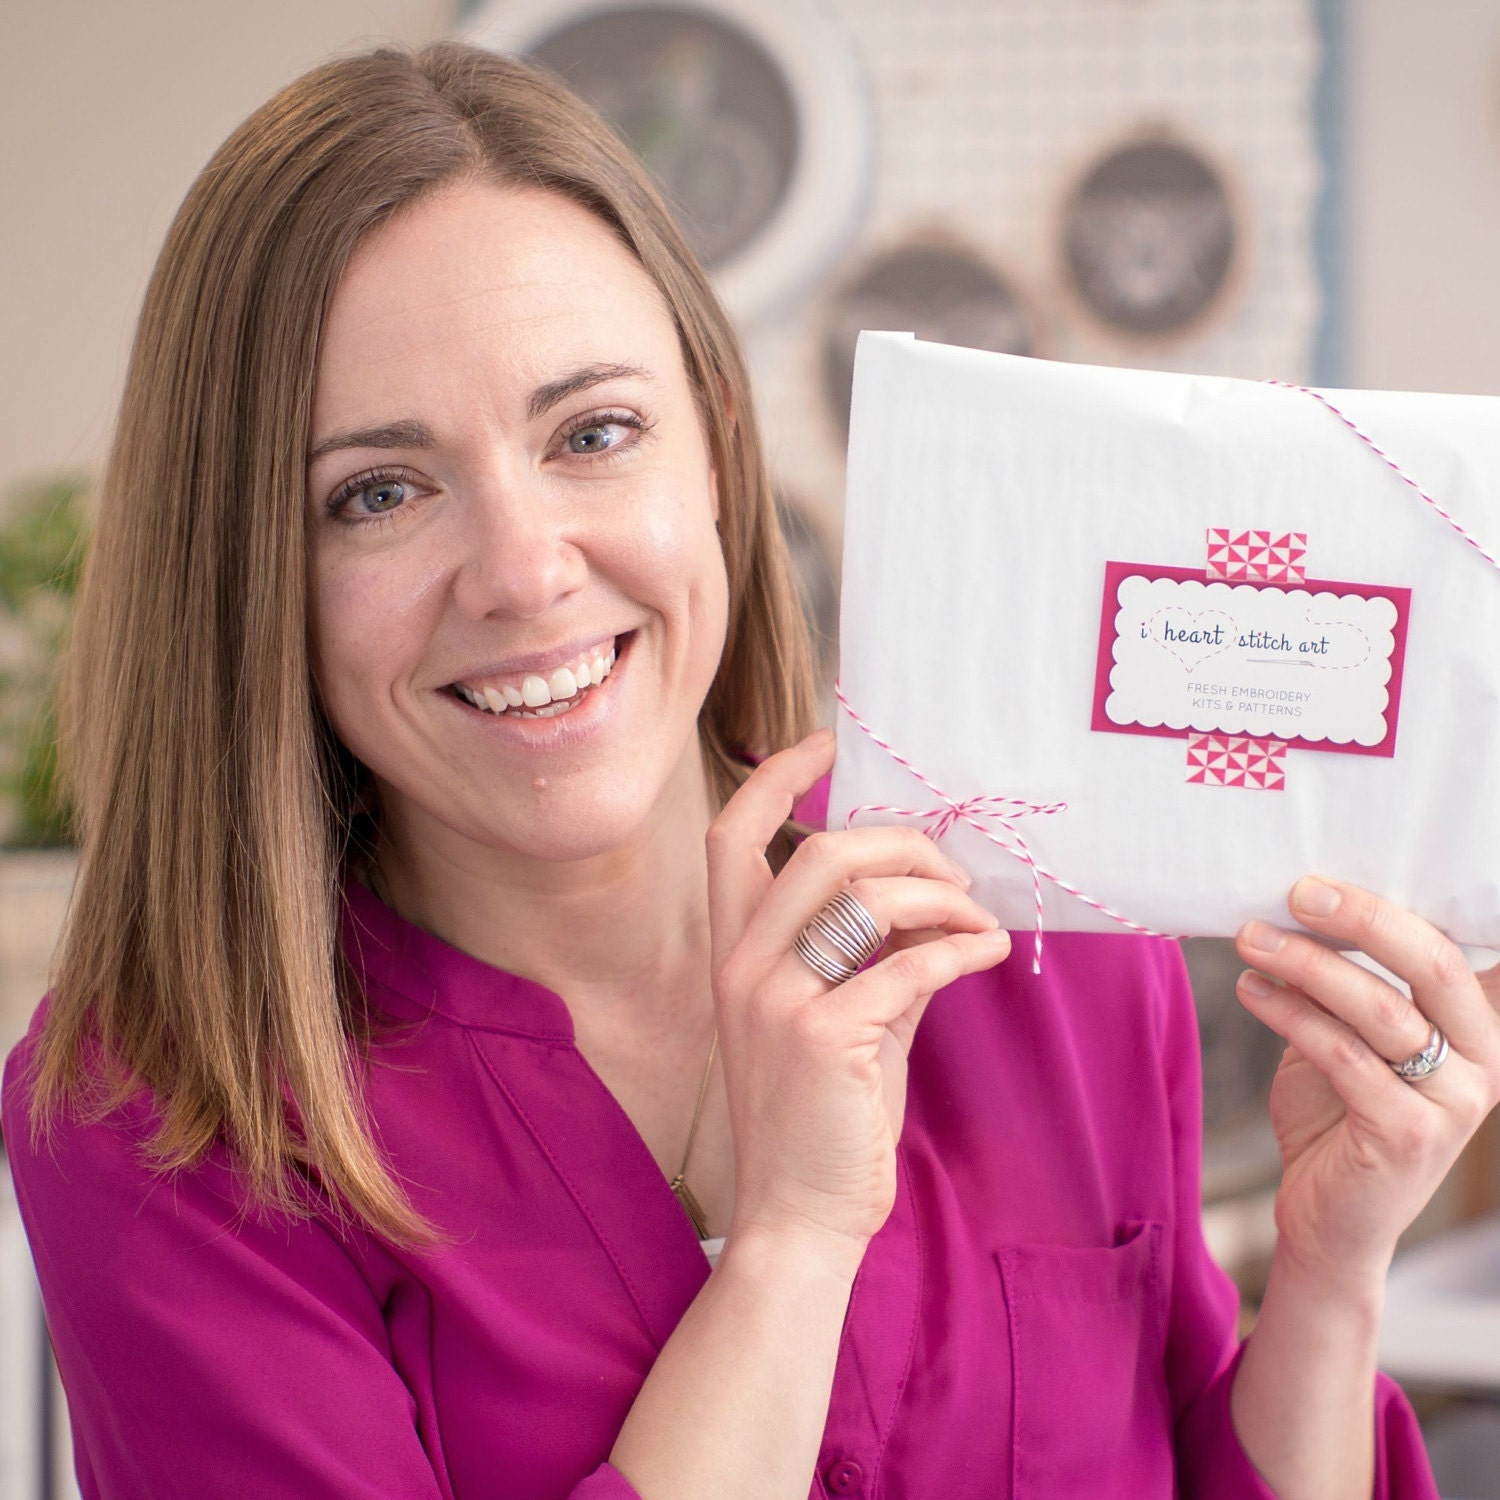 Meet Sarah - creator and designer of all things I Heart Stitch Art!